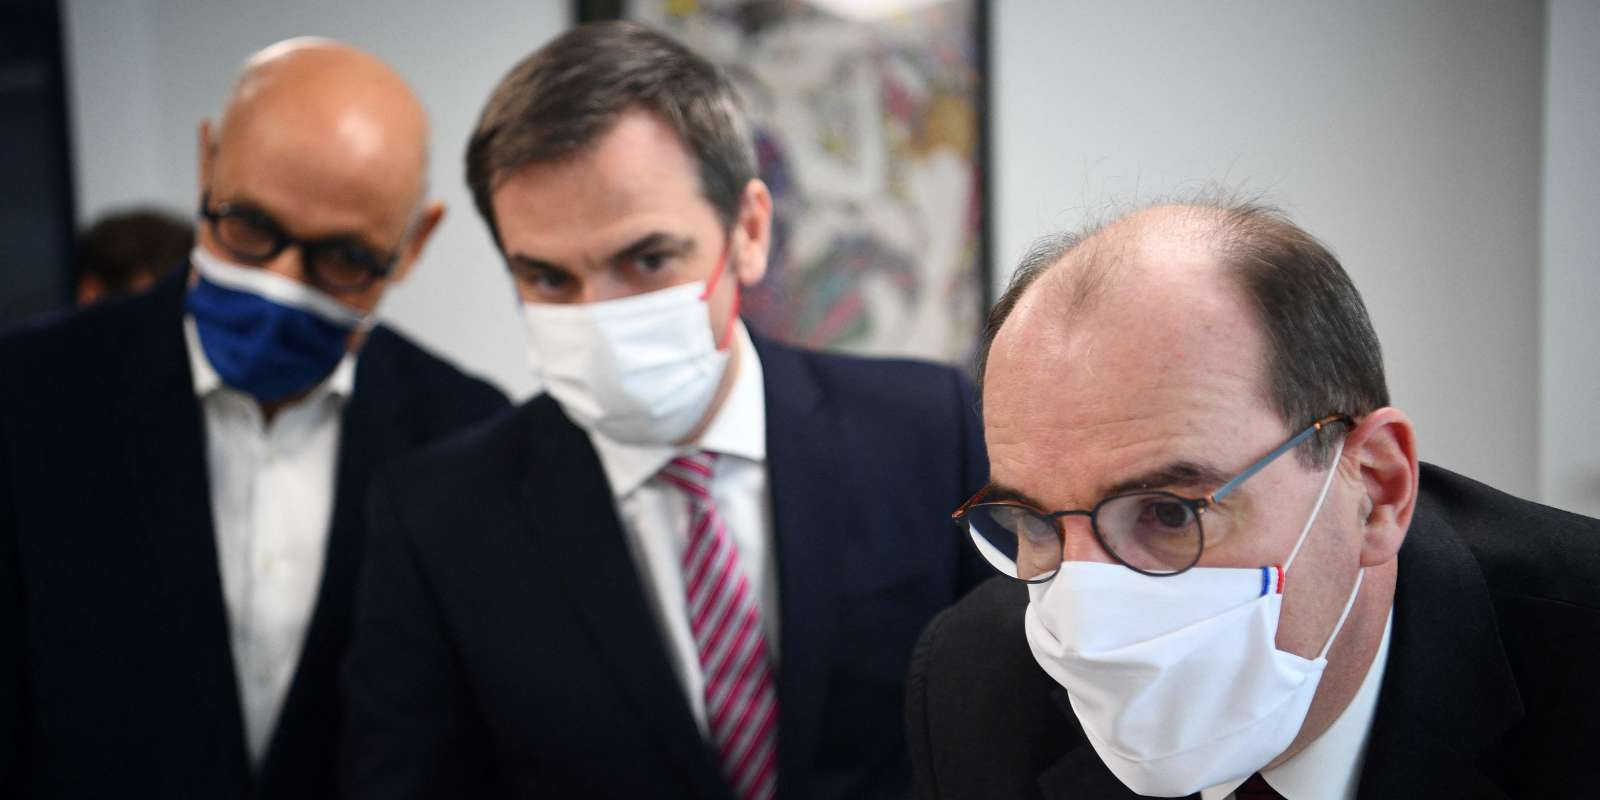 French Prime Minister Jean Castex (L) and French Health Minister Olivier Veran (C) visit a health center for the start of the Covid-19 vaccination campaign by the town medicine on February 25, 2021 in Paris. / AFP / POOL / Christophe ARCHAMBAULT